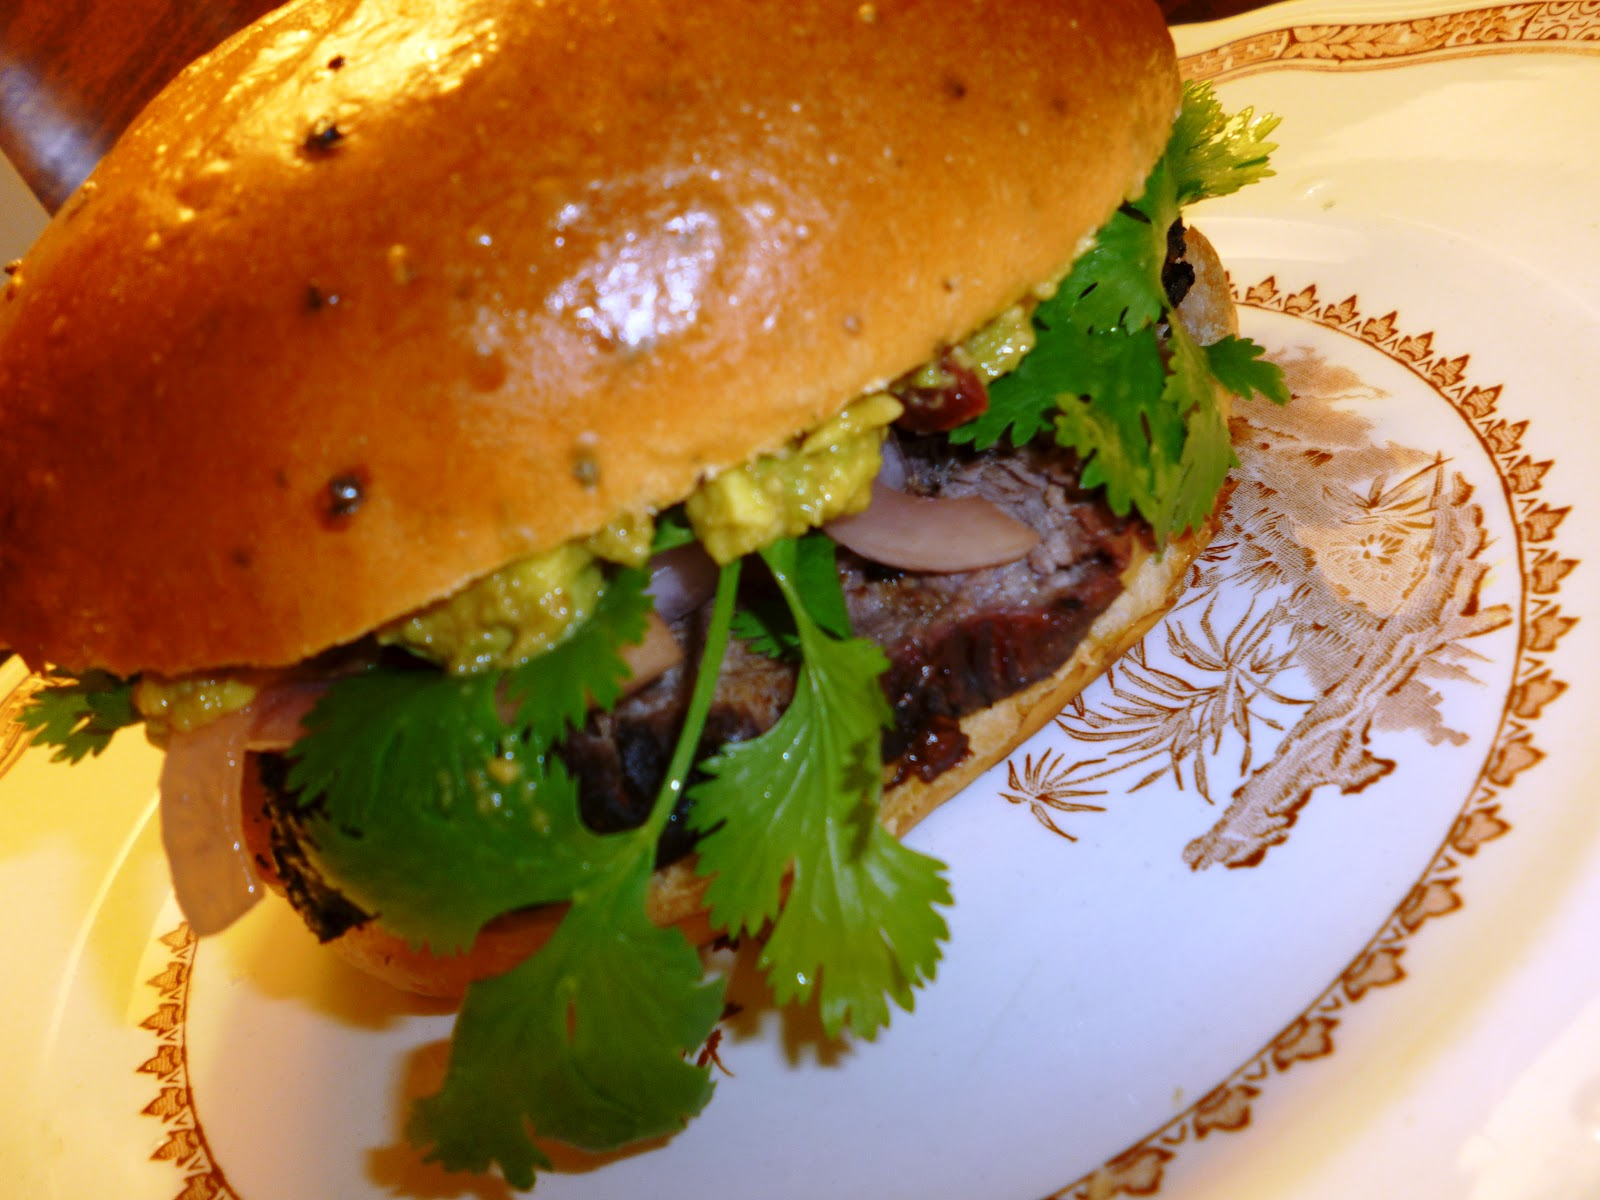 Spicy Grilled Lamb Sandwich